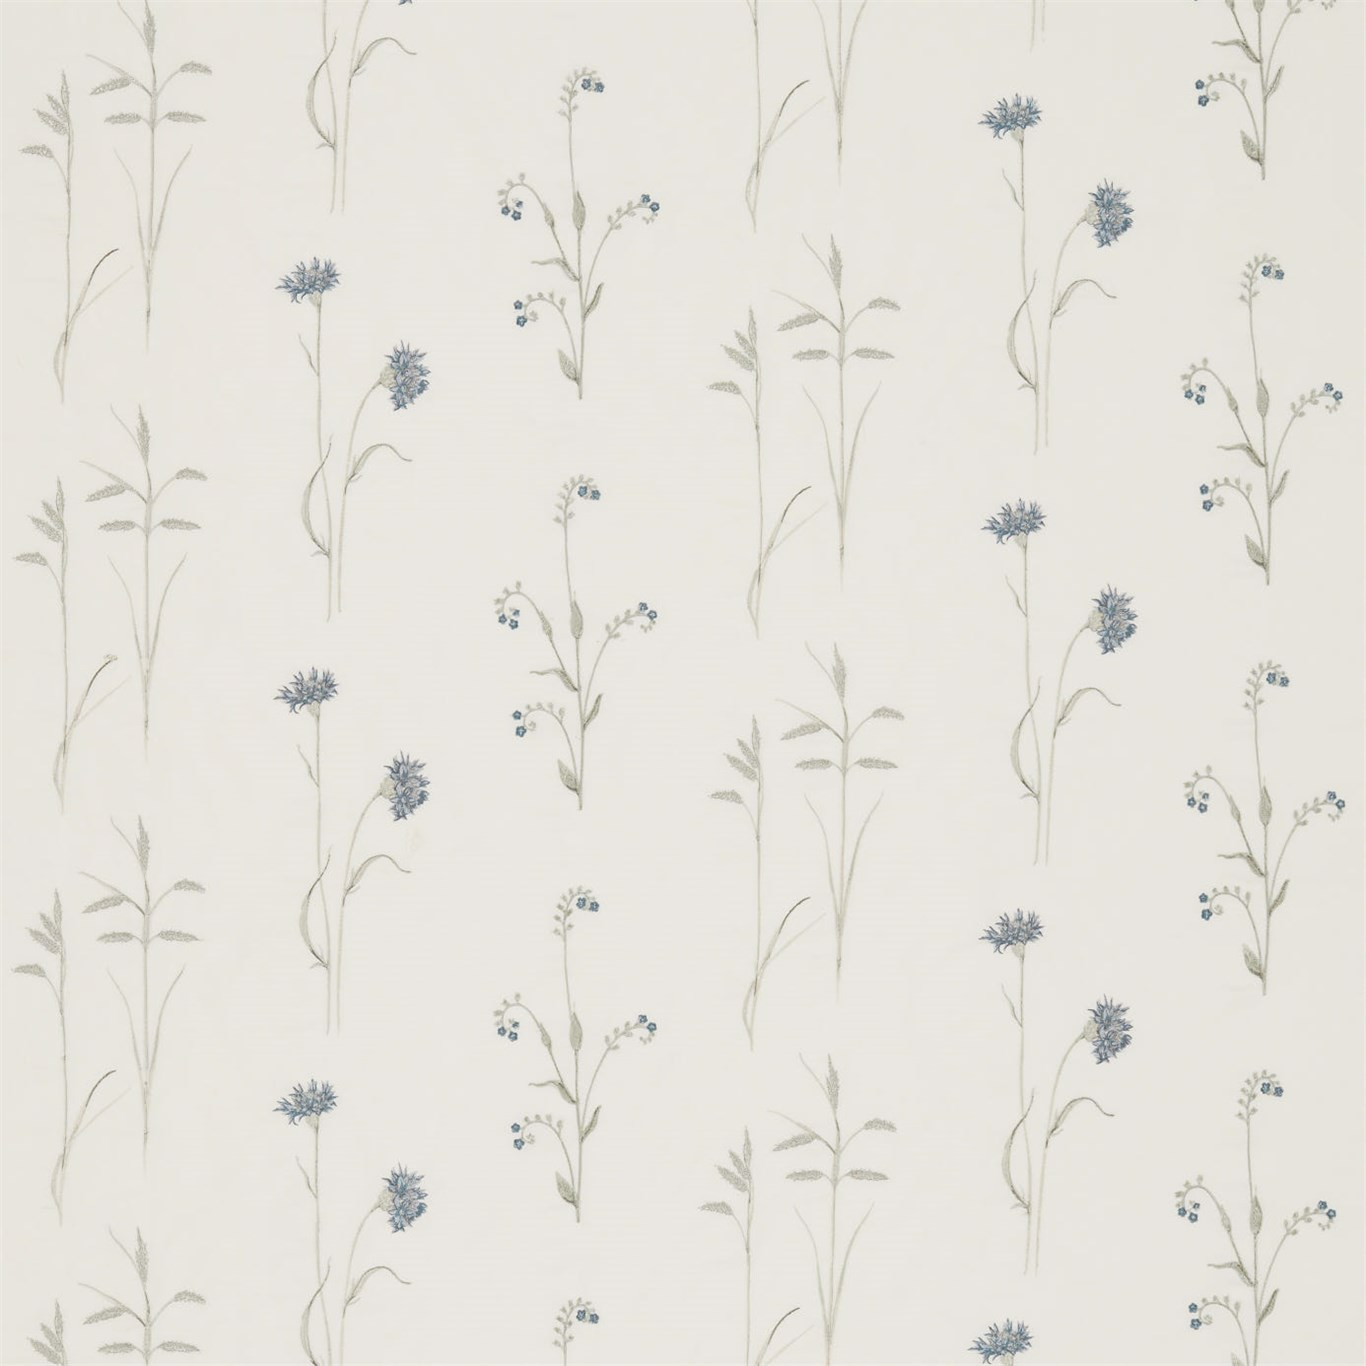 Meadow Grasses by SAN